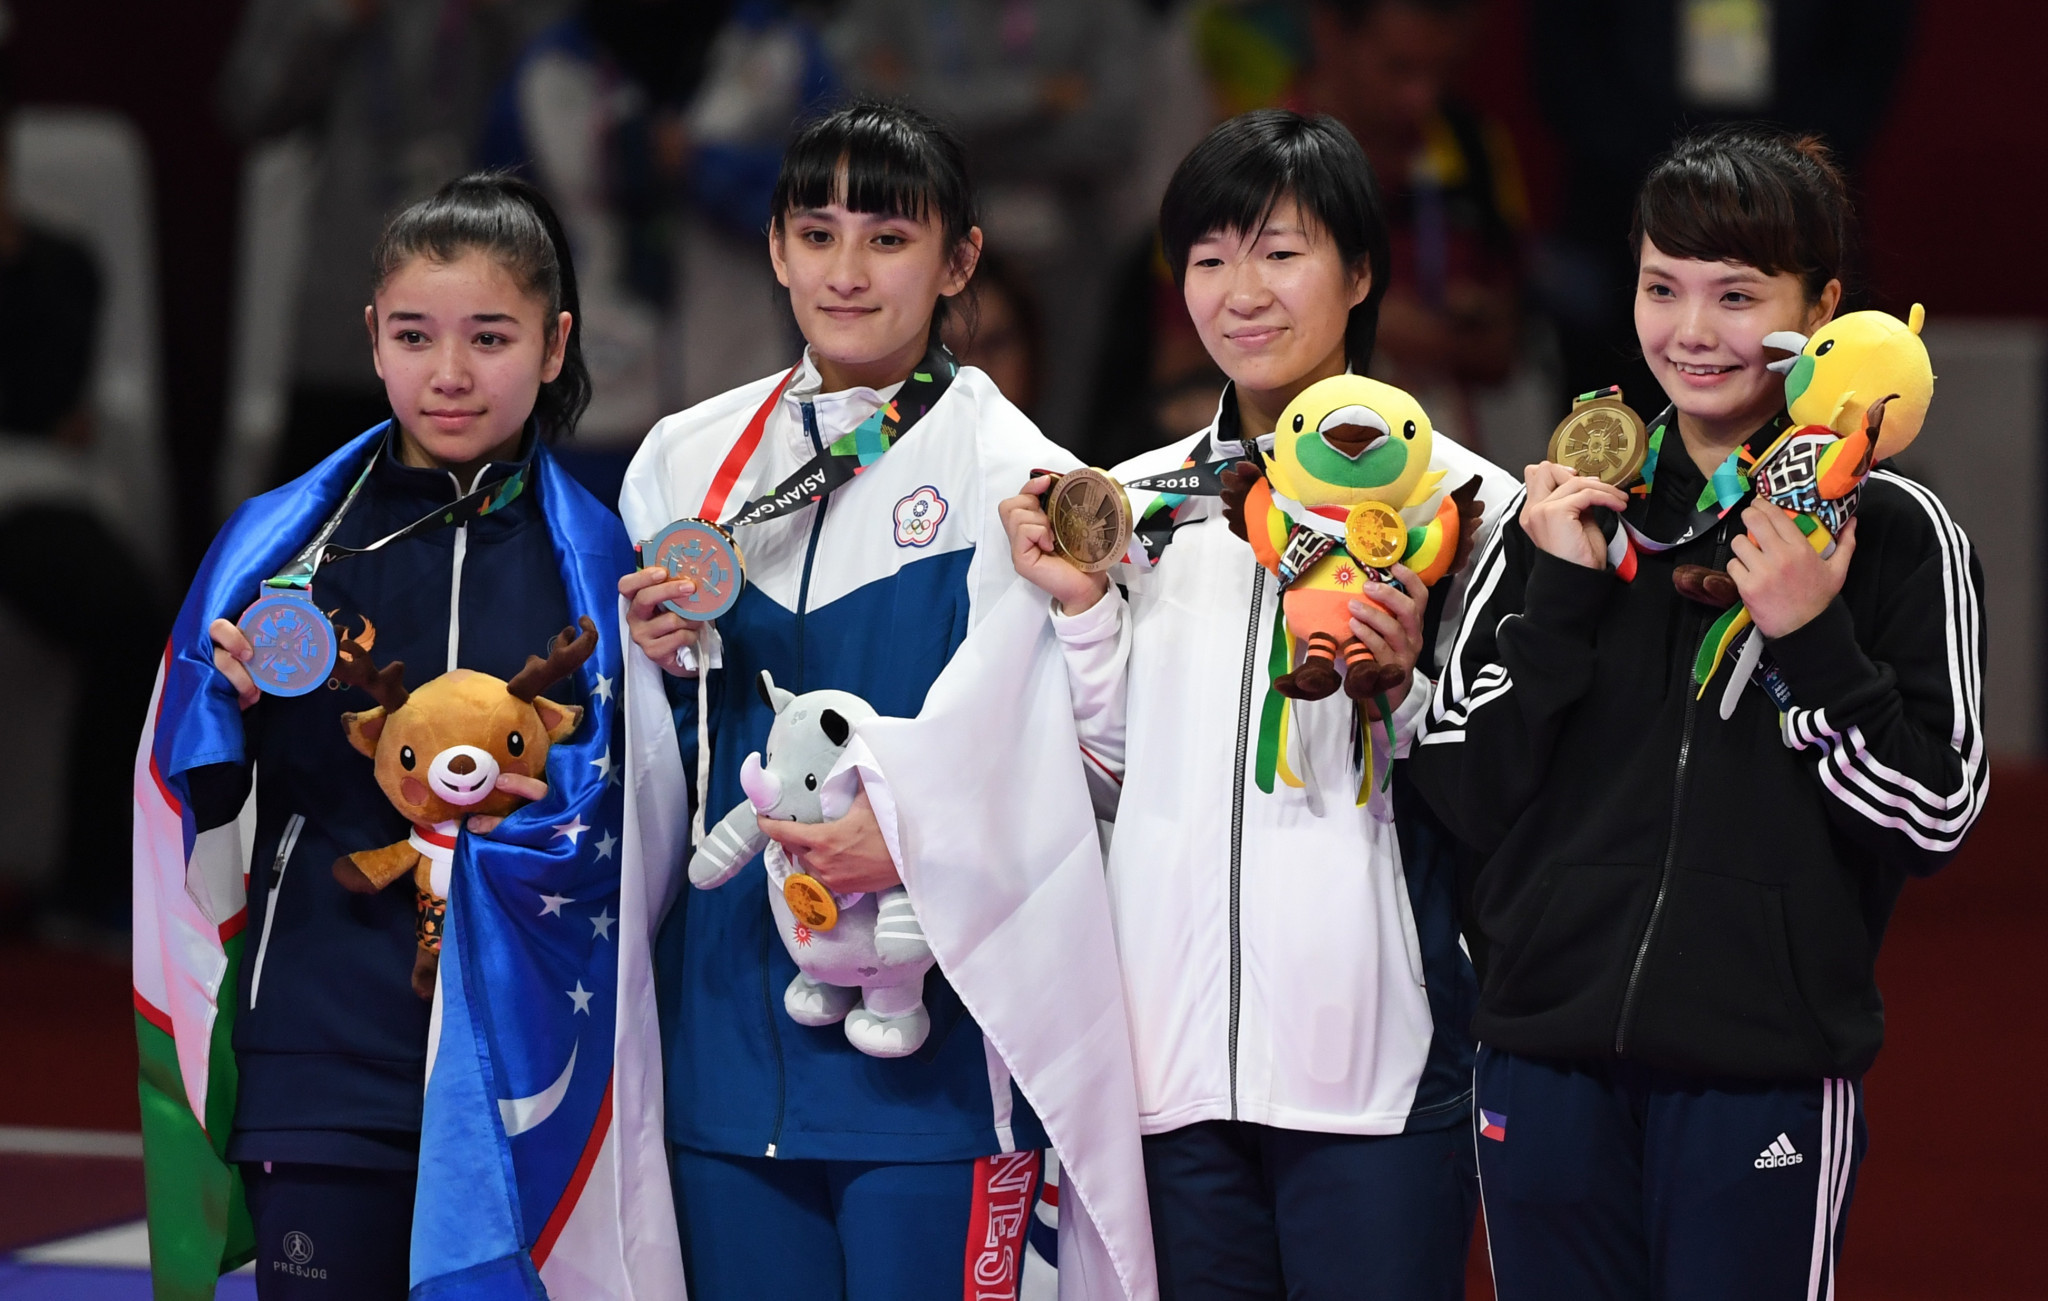 Junna Tsukii, far right, won a bronze medal at the 2018 Asian Games - the Philippines' only medal in the sport ©Getty Images